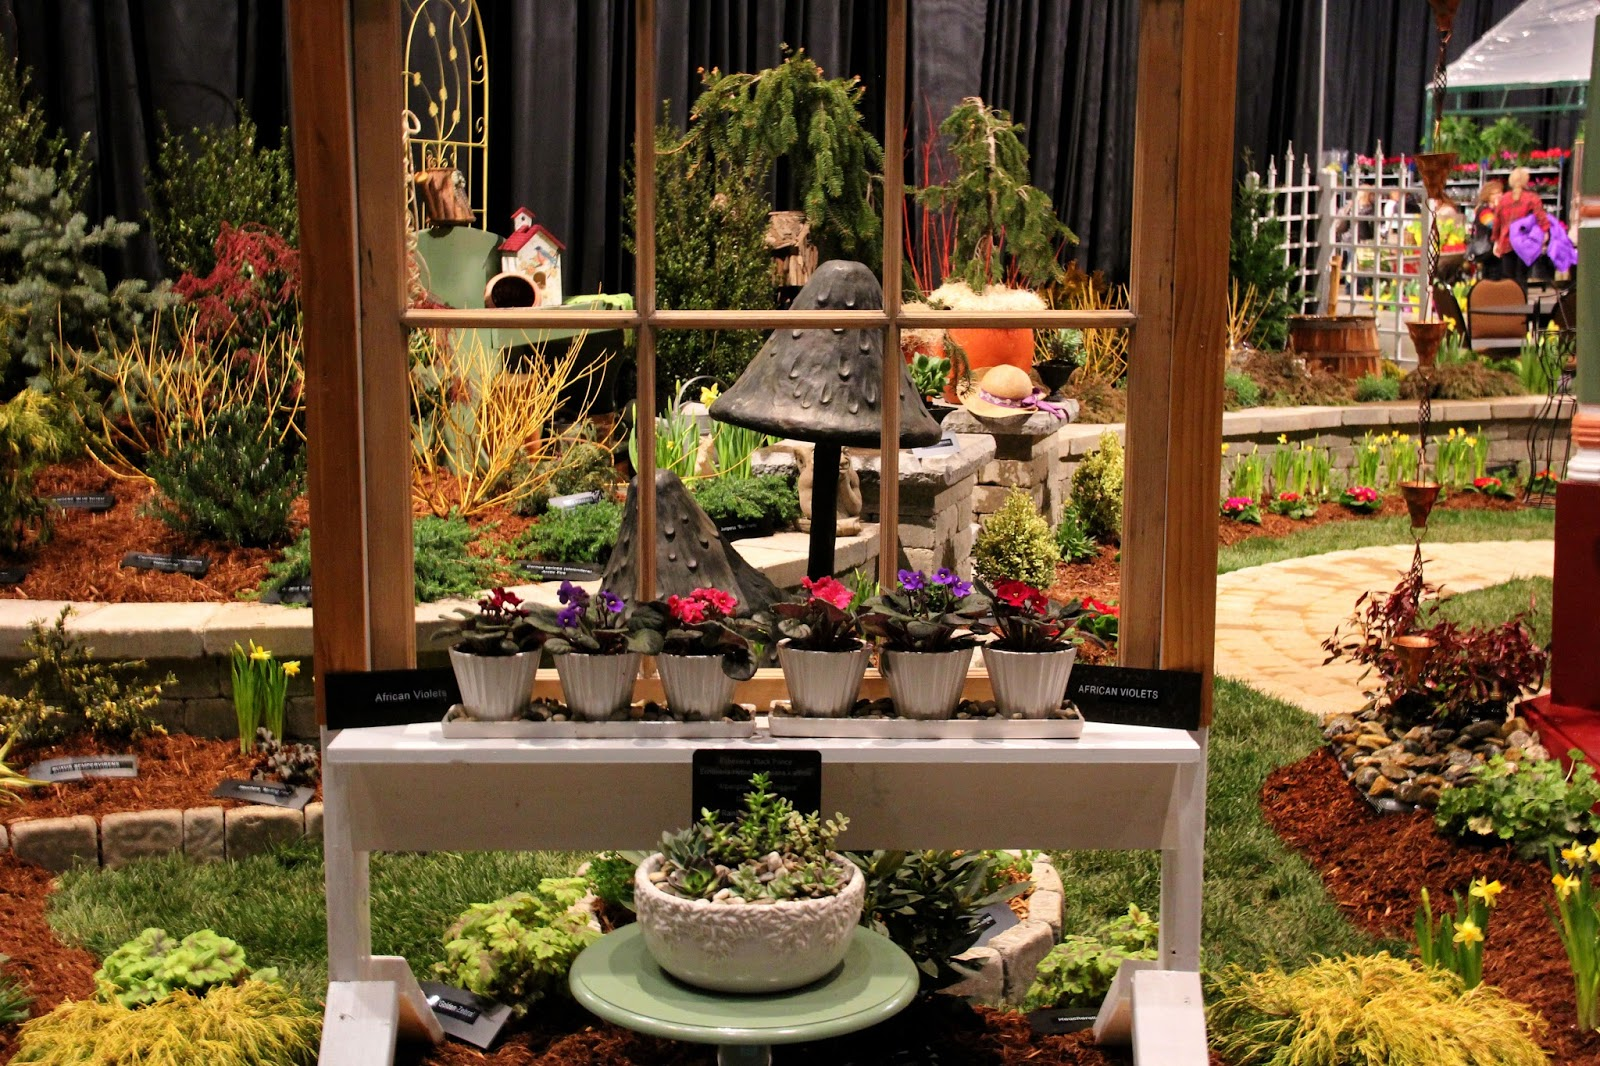 Home Place: The 35th Annual Connecticut Flower and Garden Show